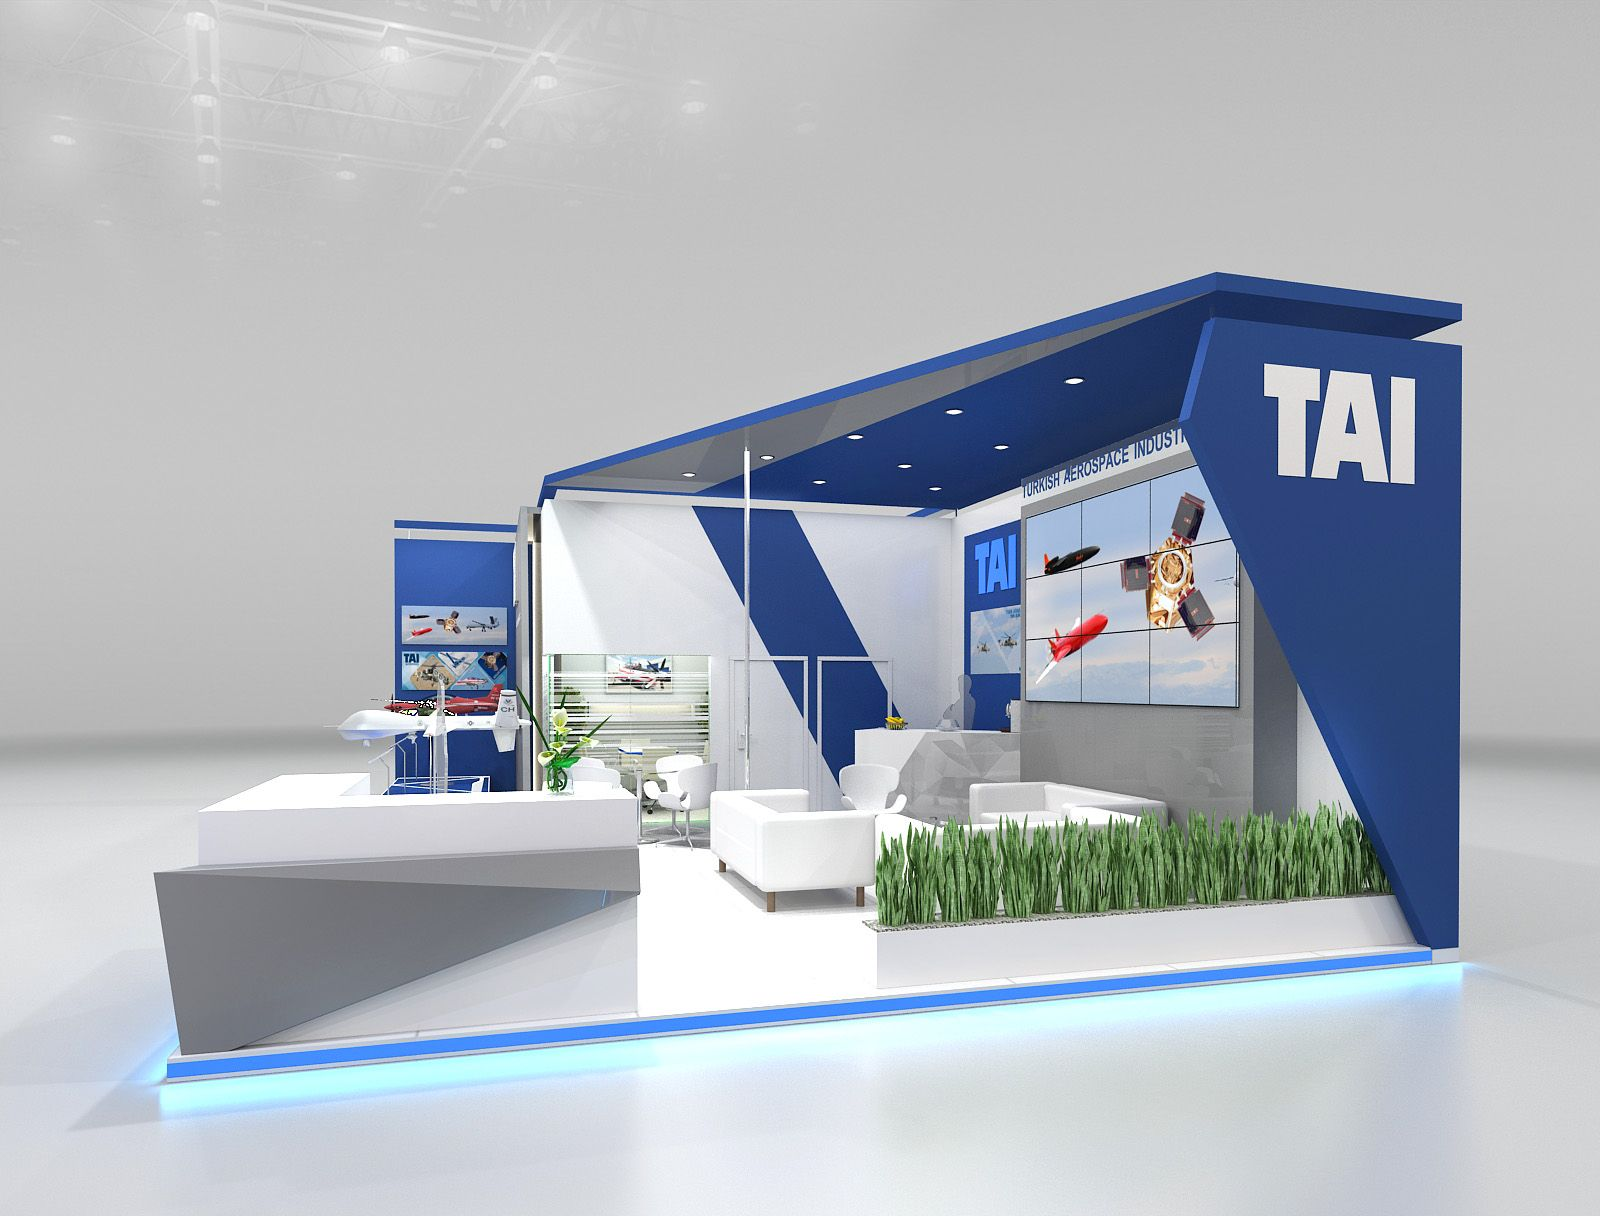 Exhibition Stand Design Hertford : Tai by ivan kaplin at coroflot noman pinterest